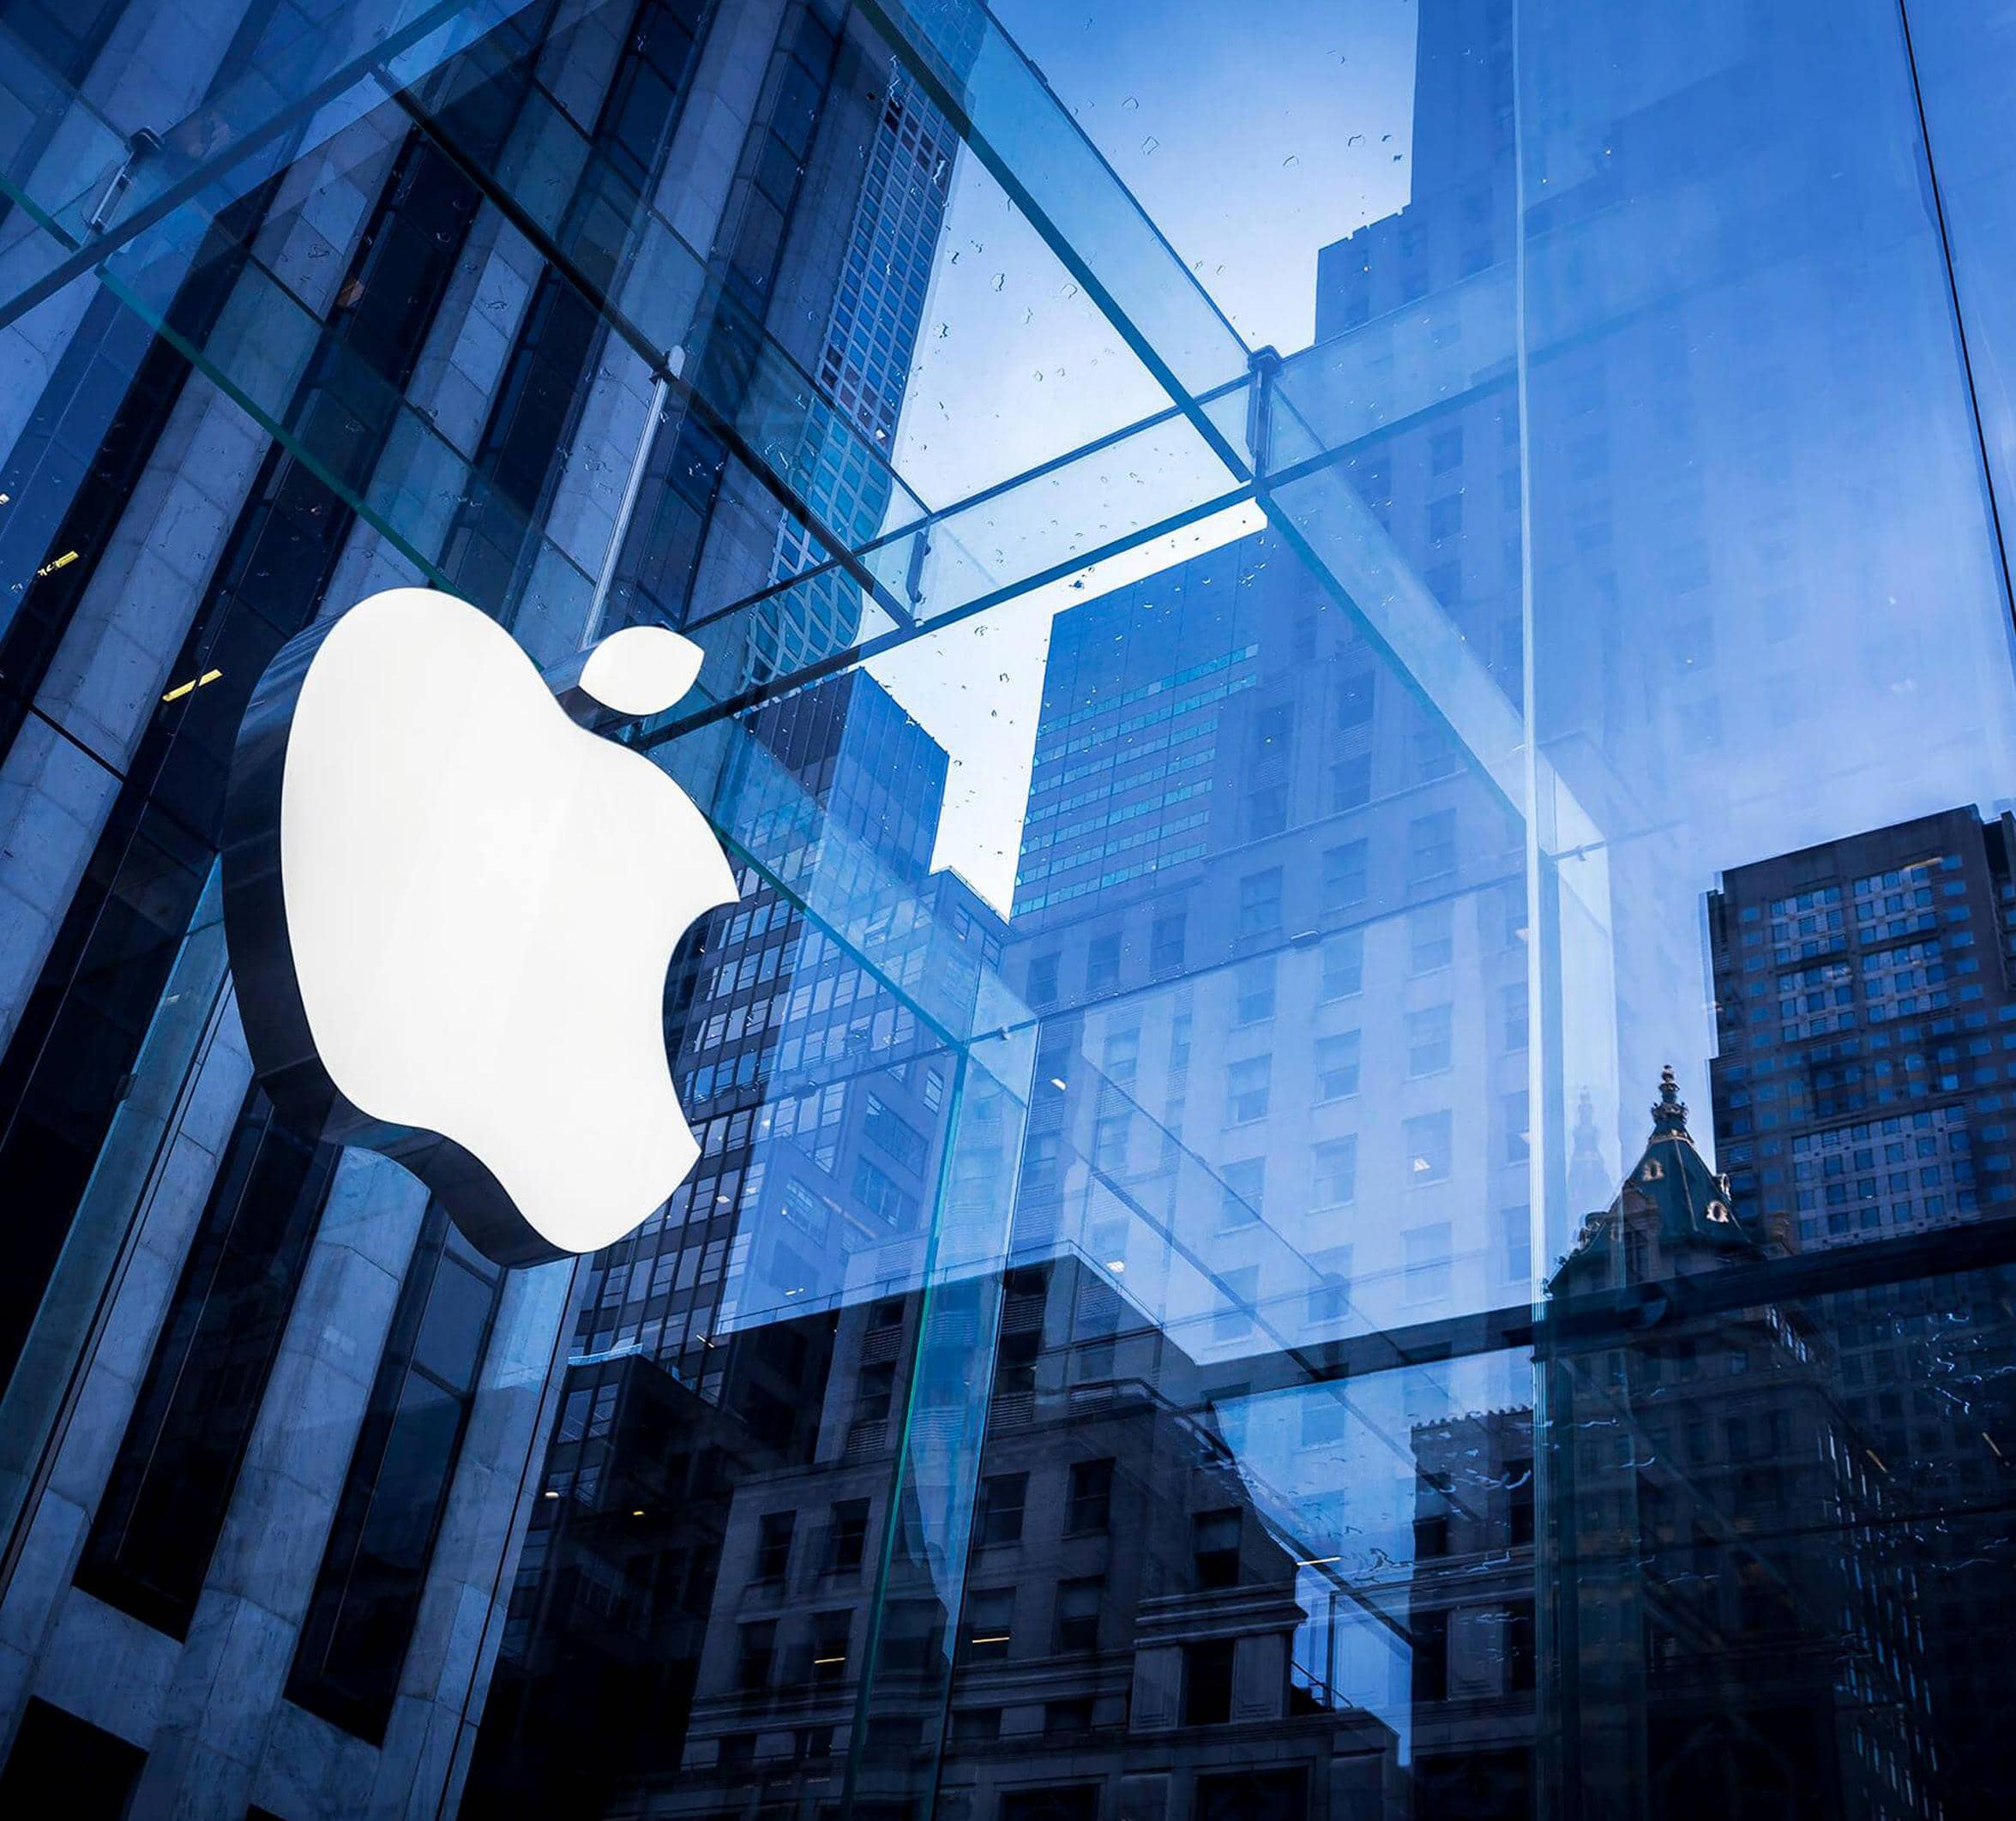 THE JUSTICE DEPARTMENT'S NEW QUARREL WITH APPLE